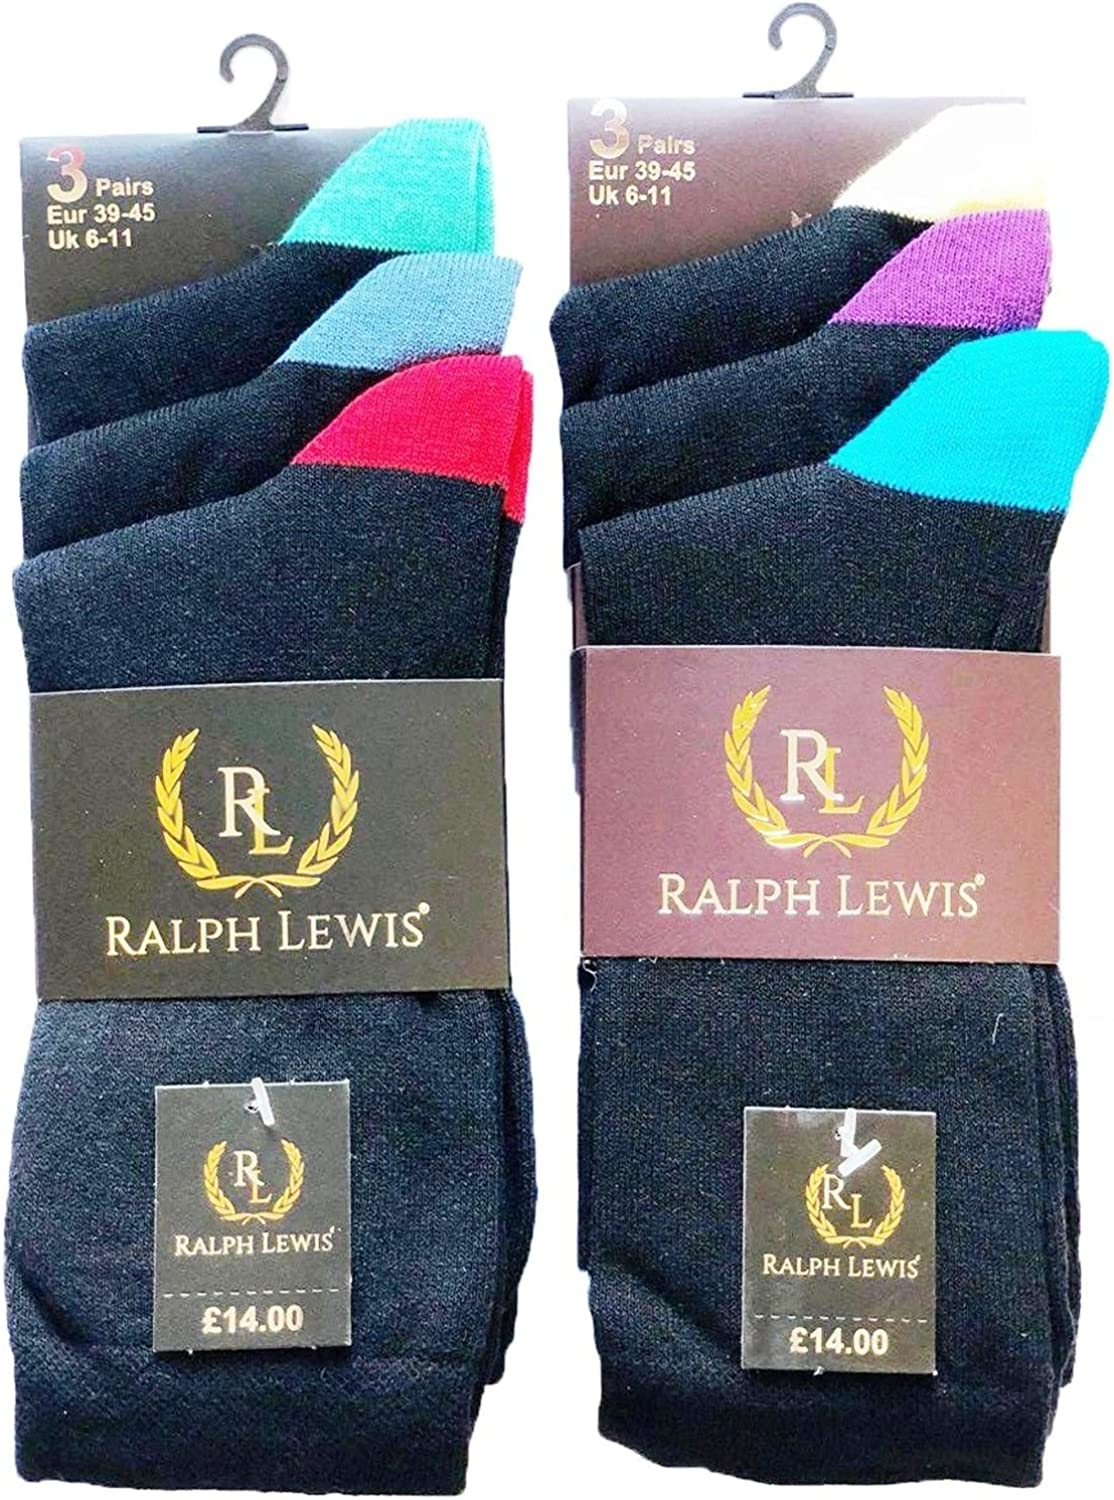 UK SIZE 6-11 3 PAIRS OF RALPH LEWIS MENS BLACK FORMAL SOFT COTTON RICH SOCKS